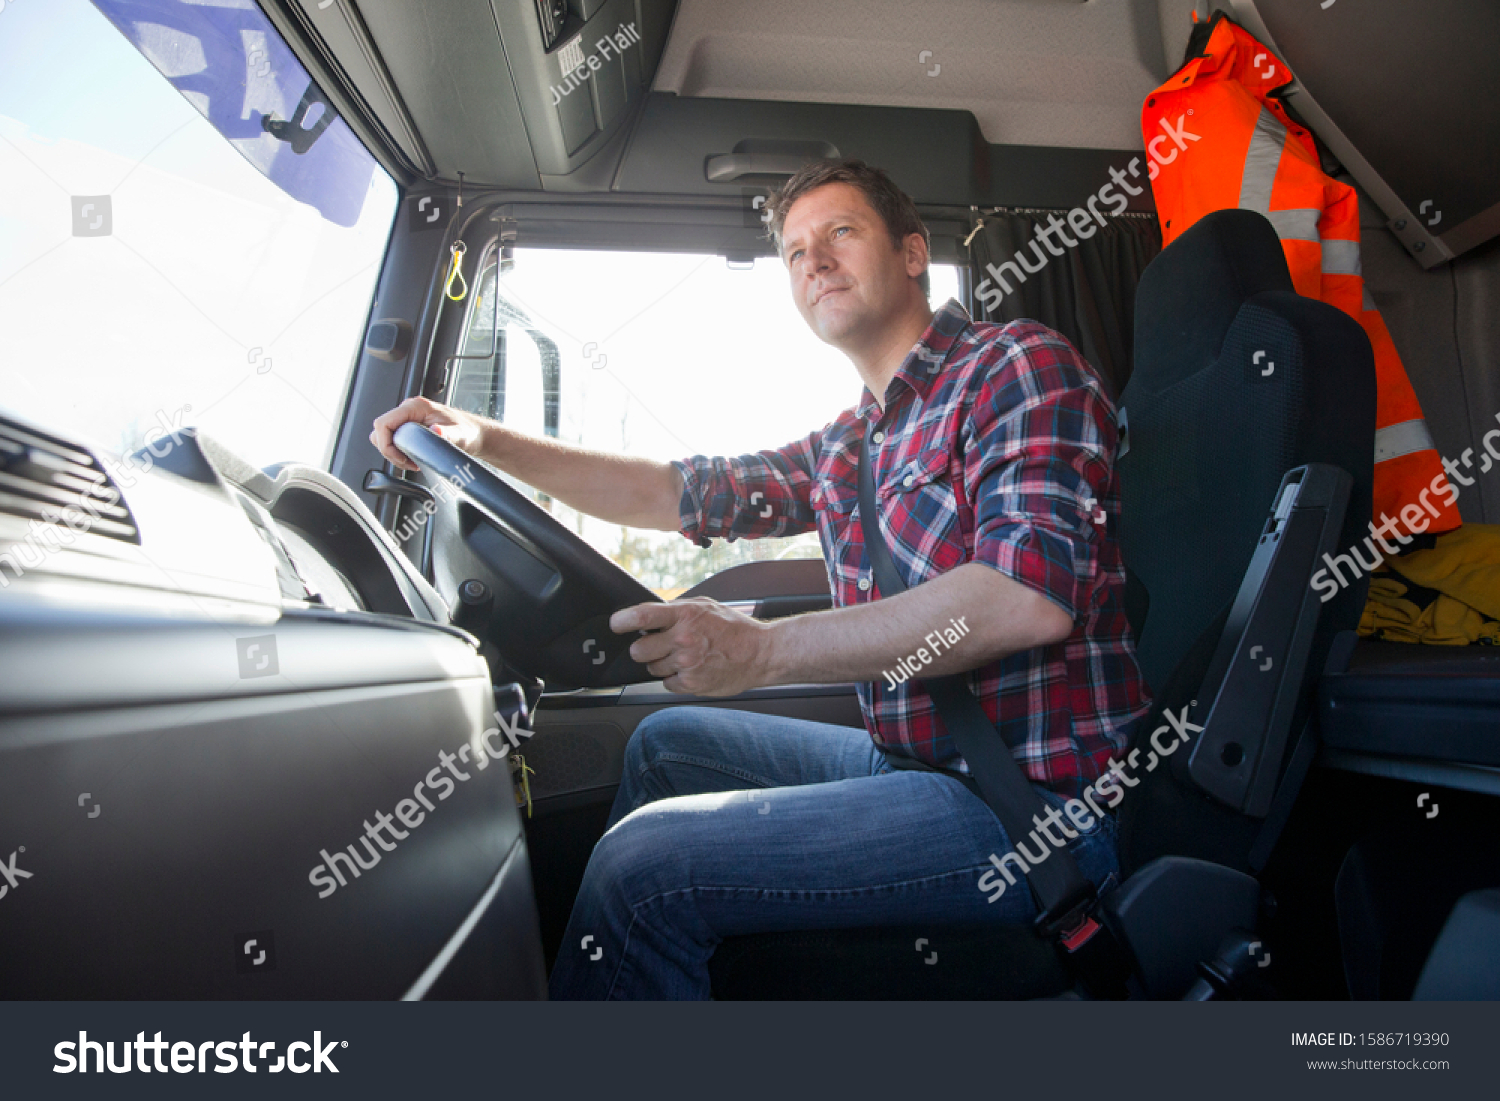 Truck driver driving in cab of semi-truck #1586719390